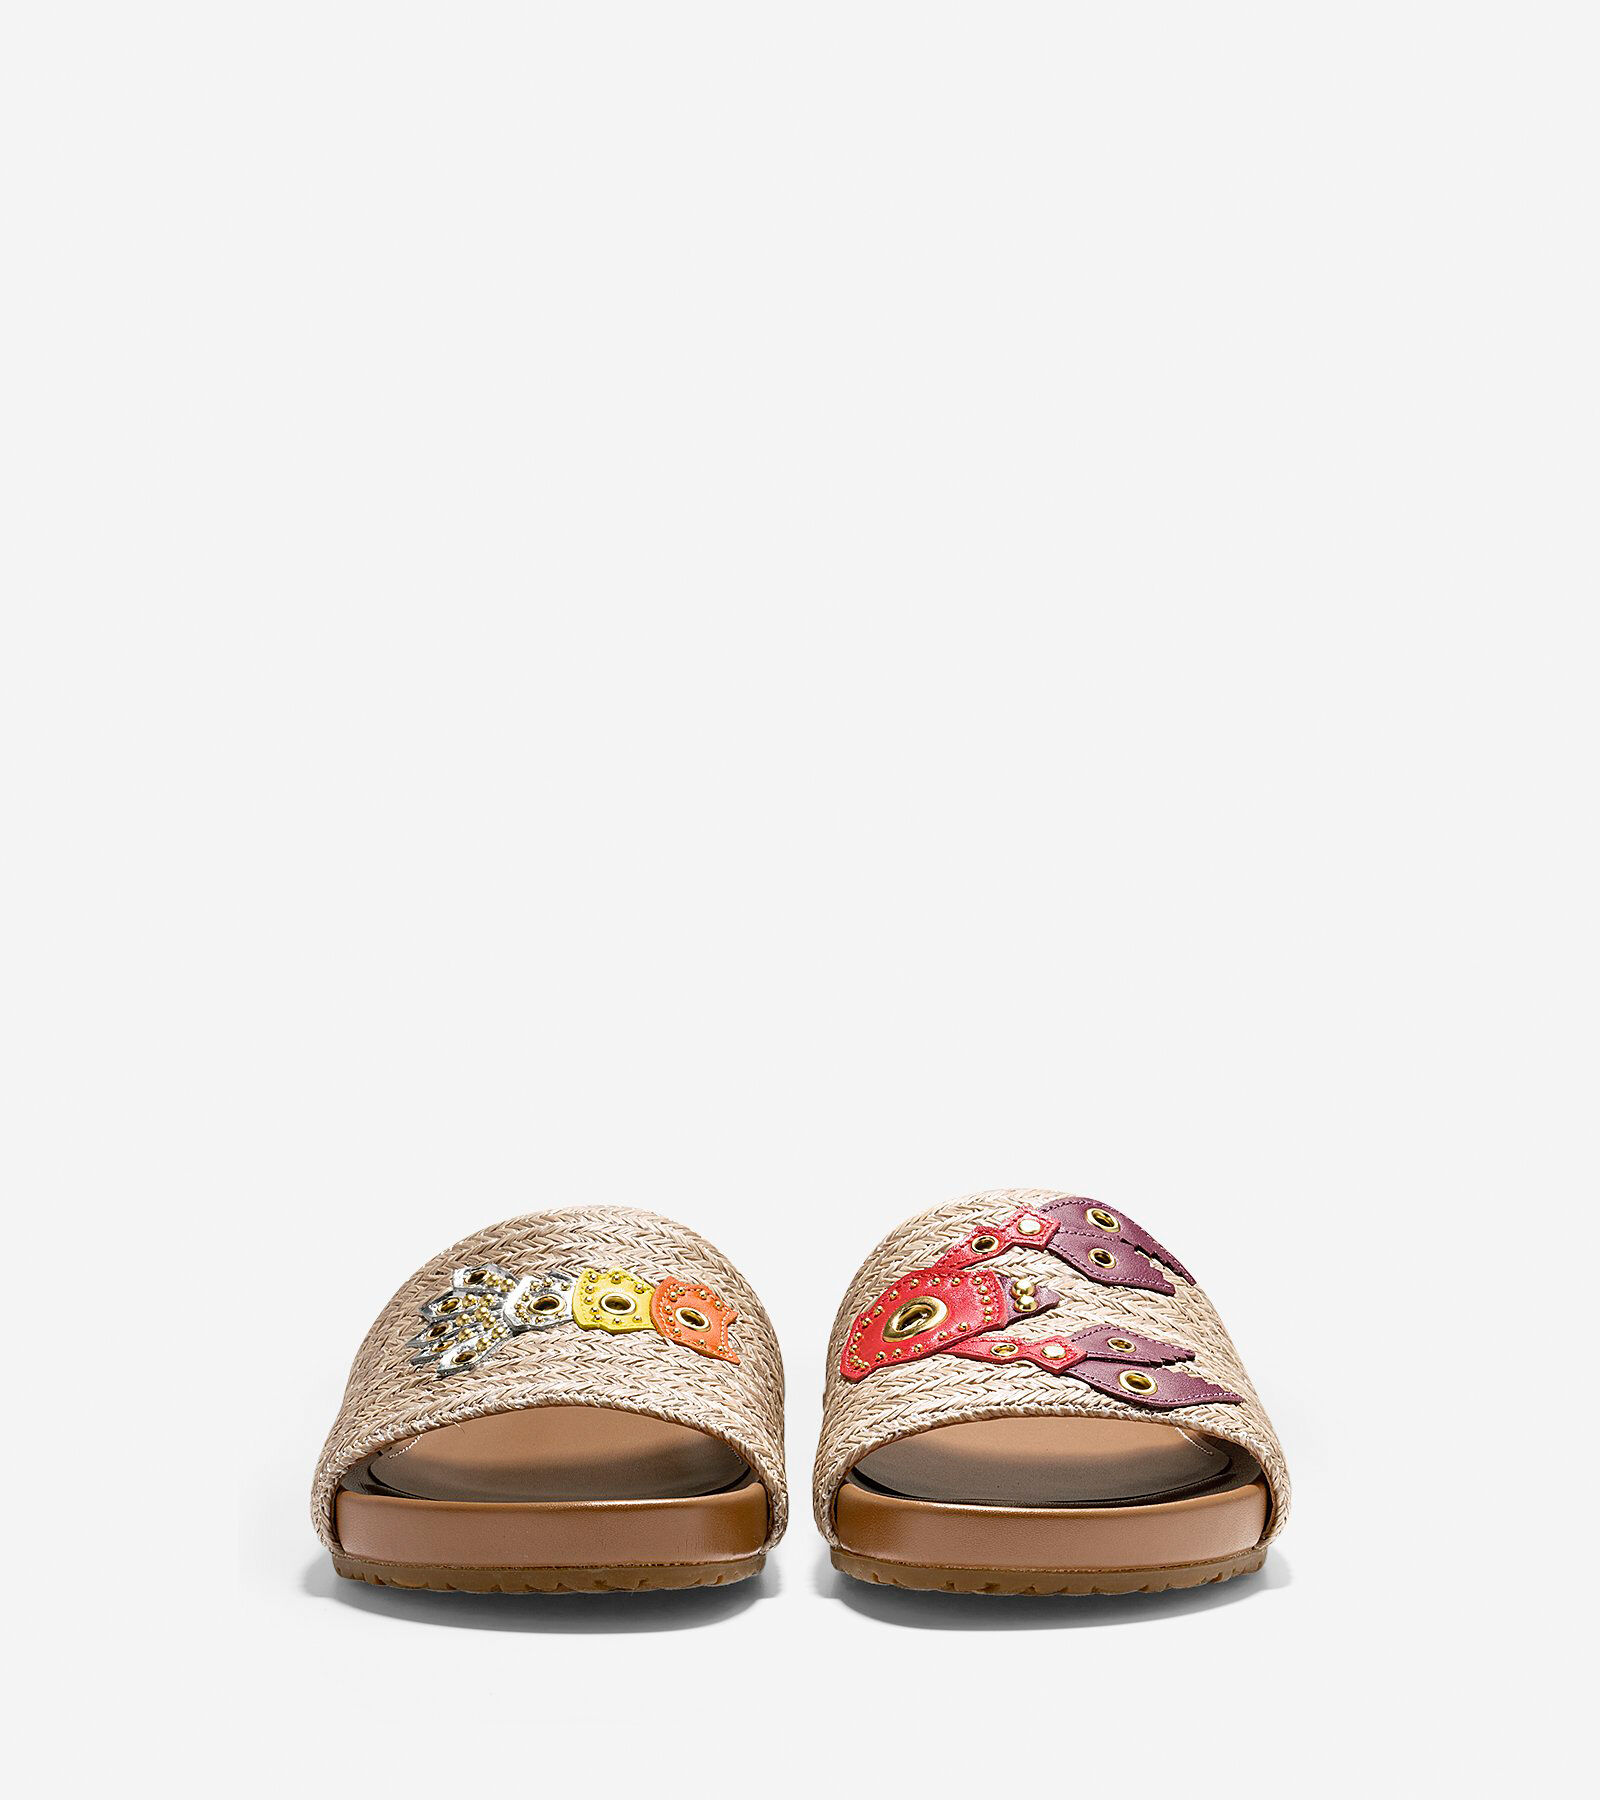 Cole Haan Grand.OS Pinch Montauk Lobster Straw Slide Sandals I0d3o